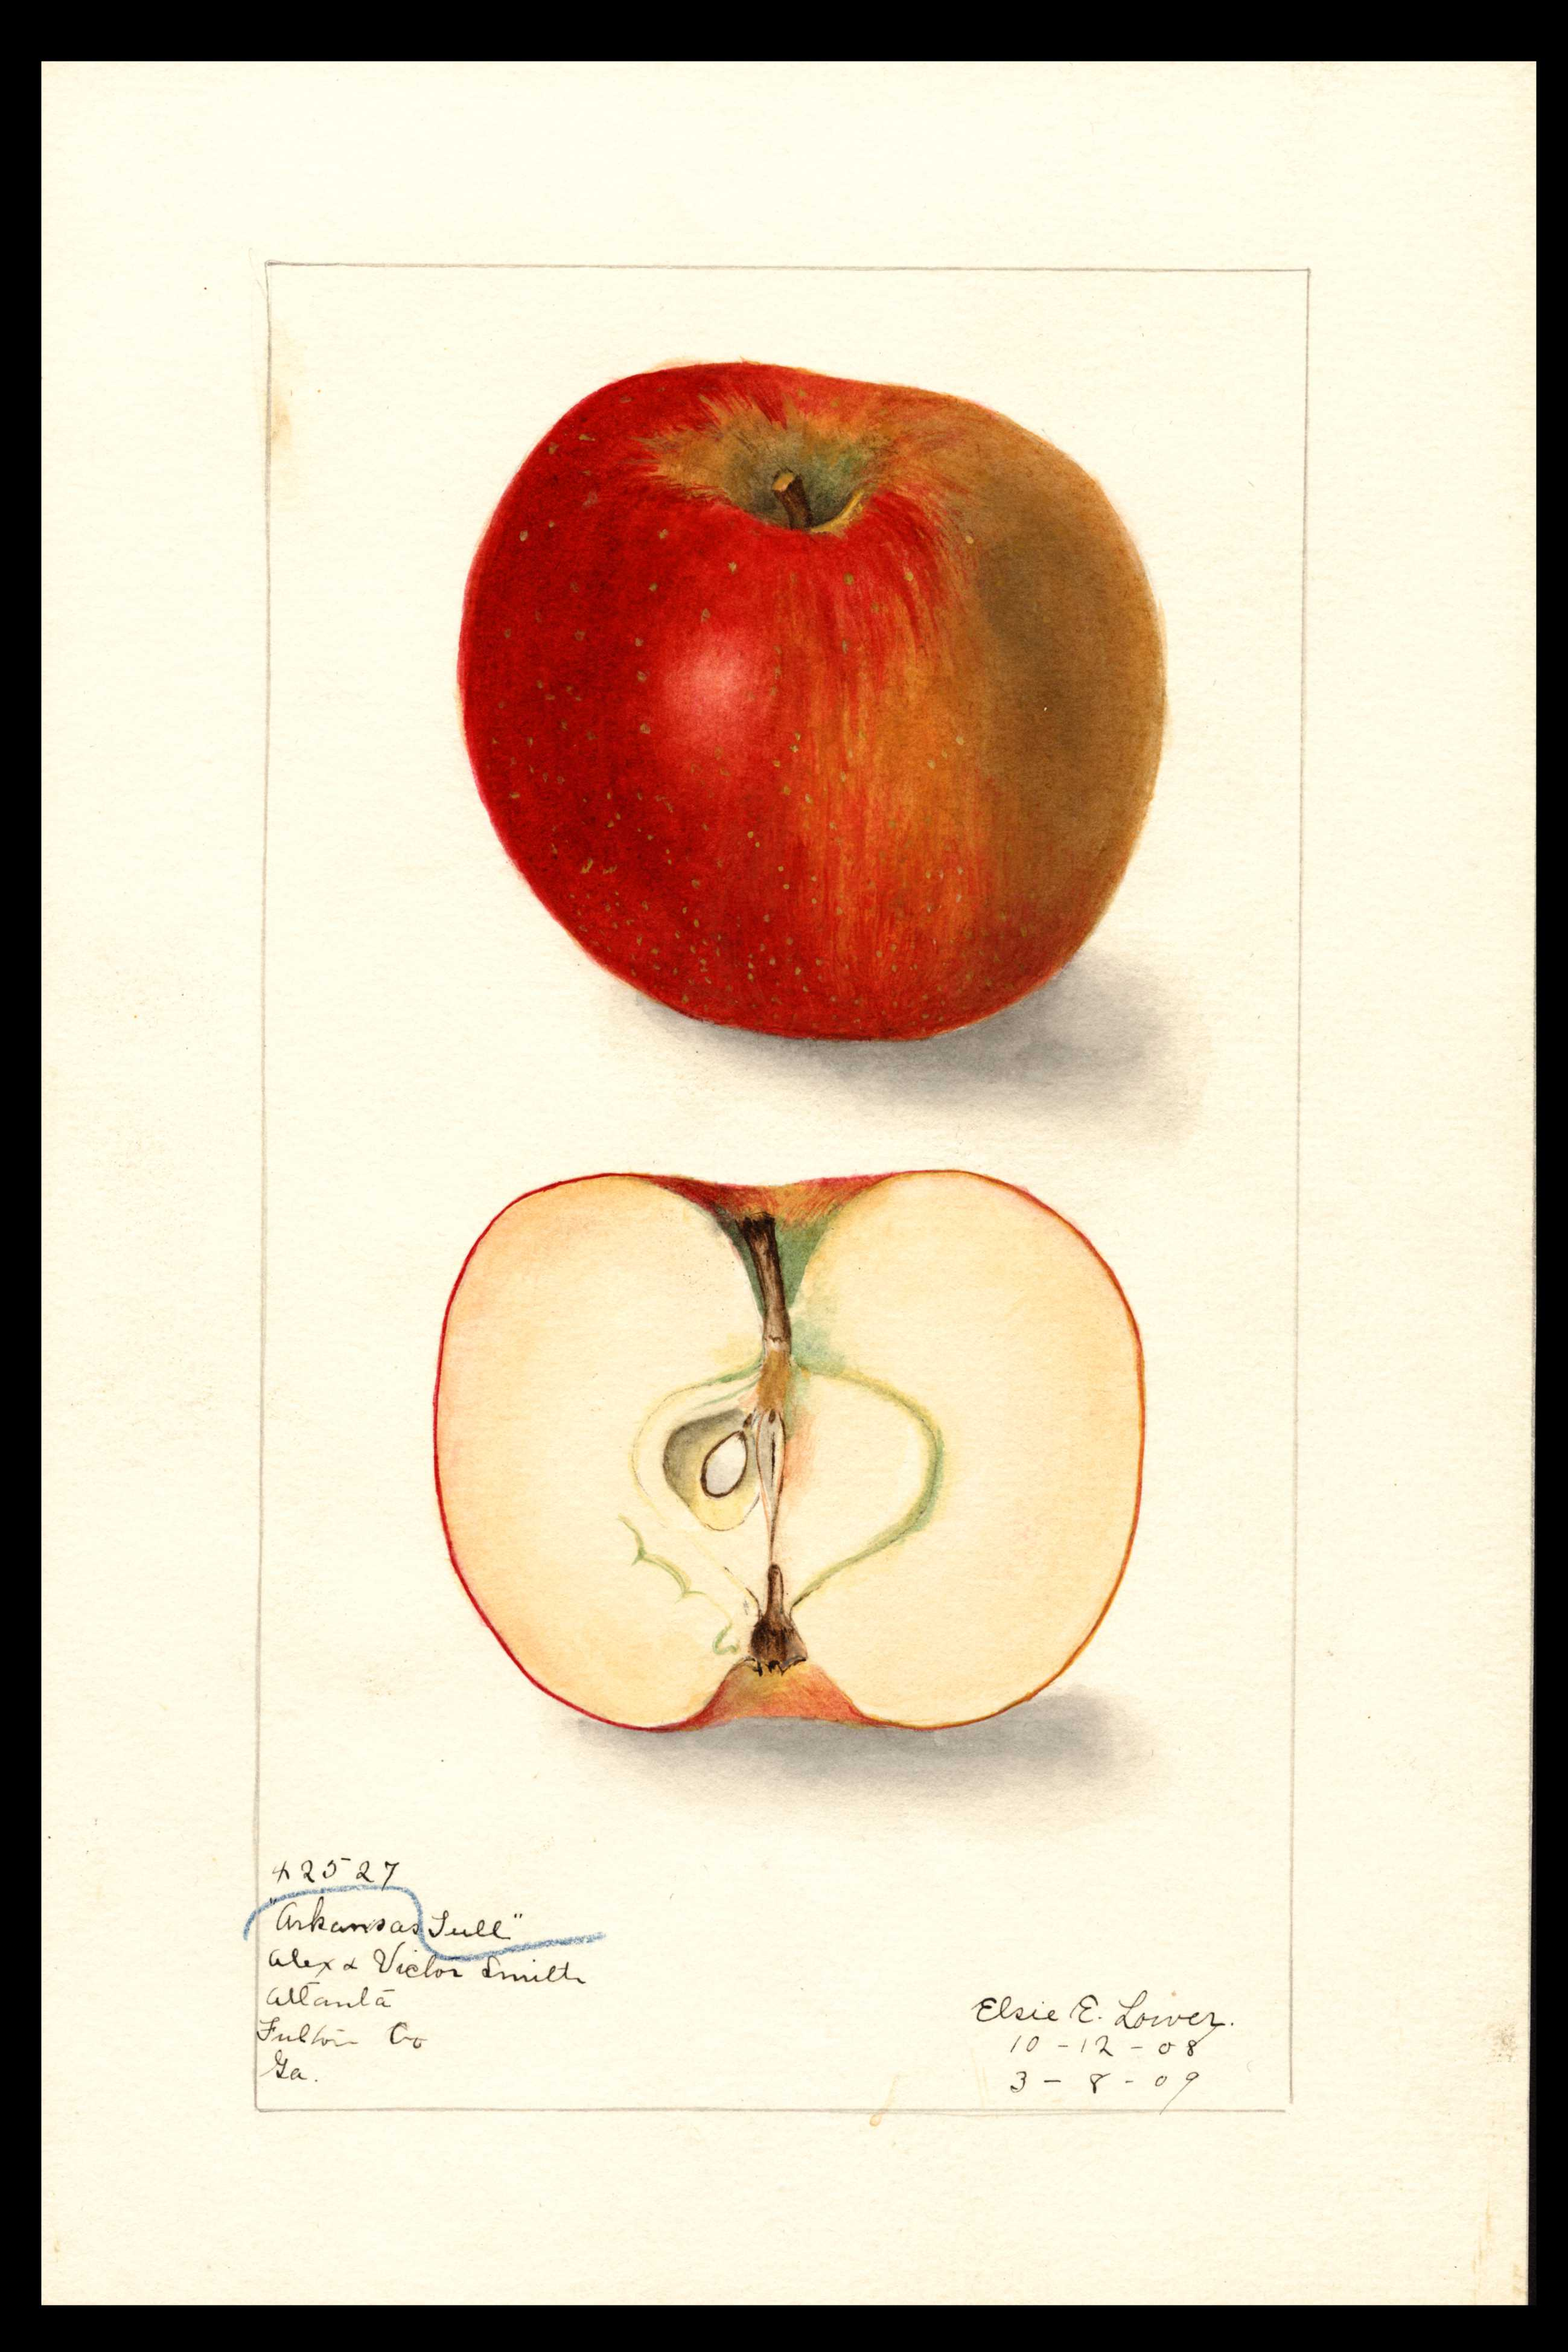 watercolor of a red apple with a large brown patch